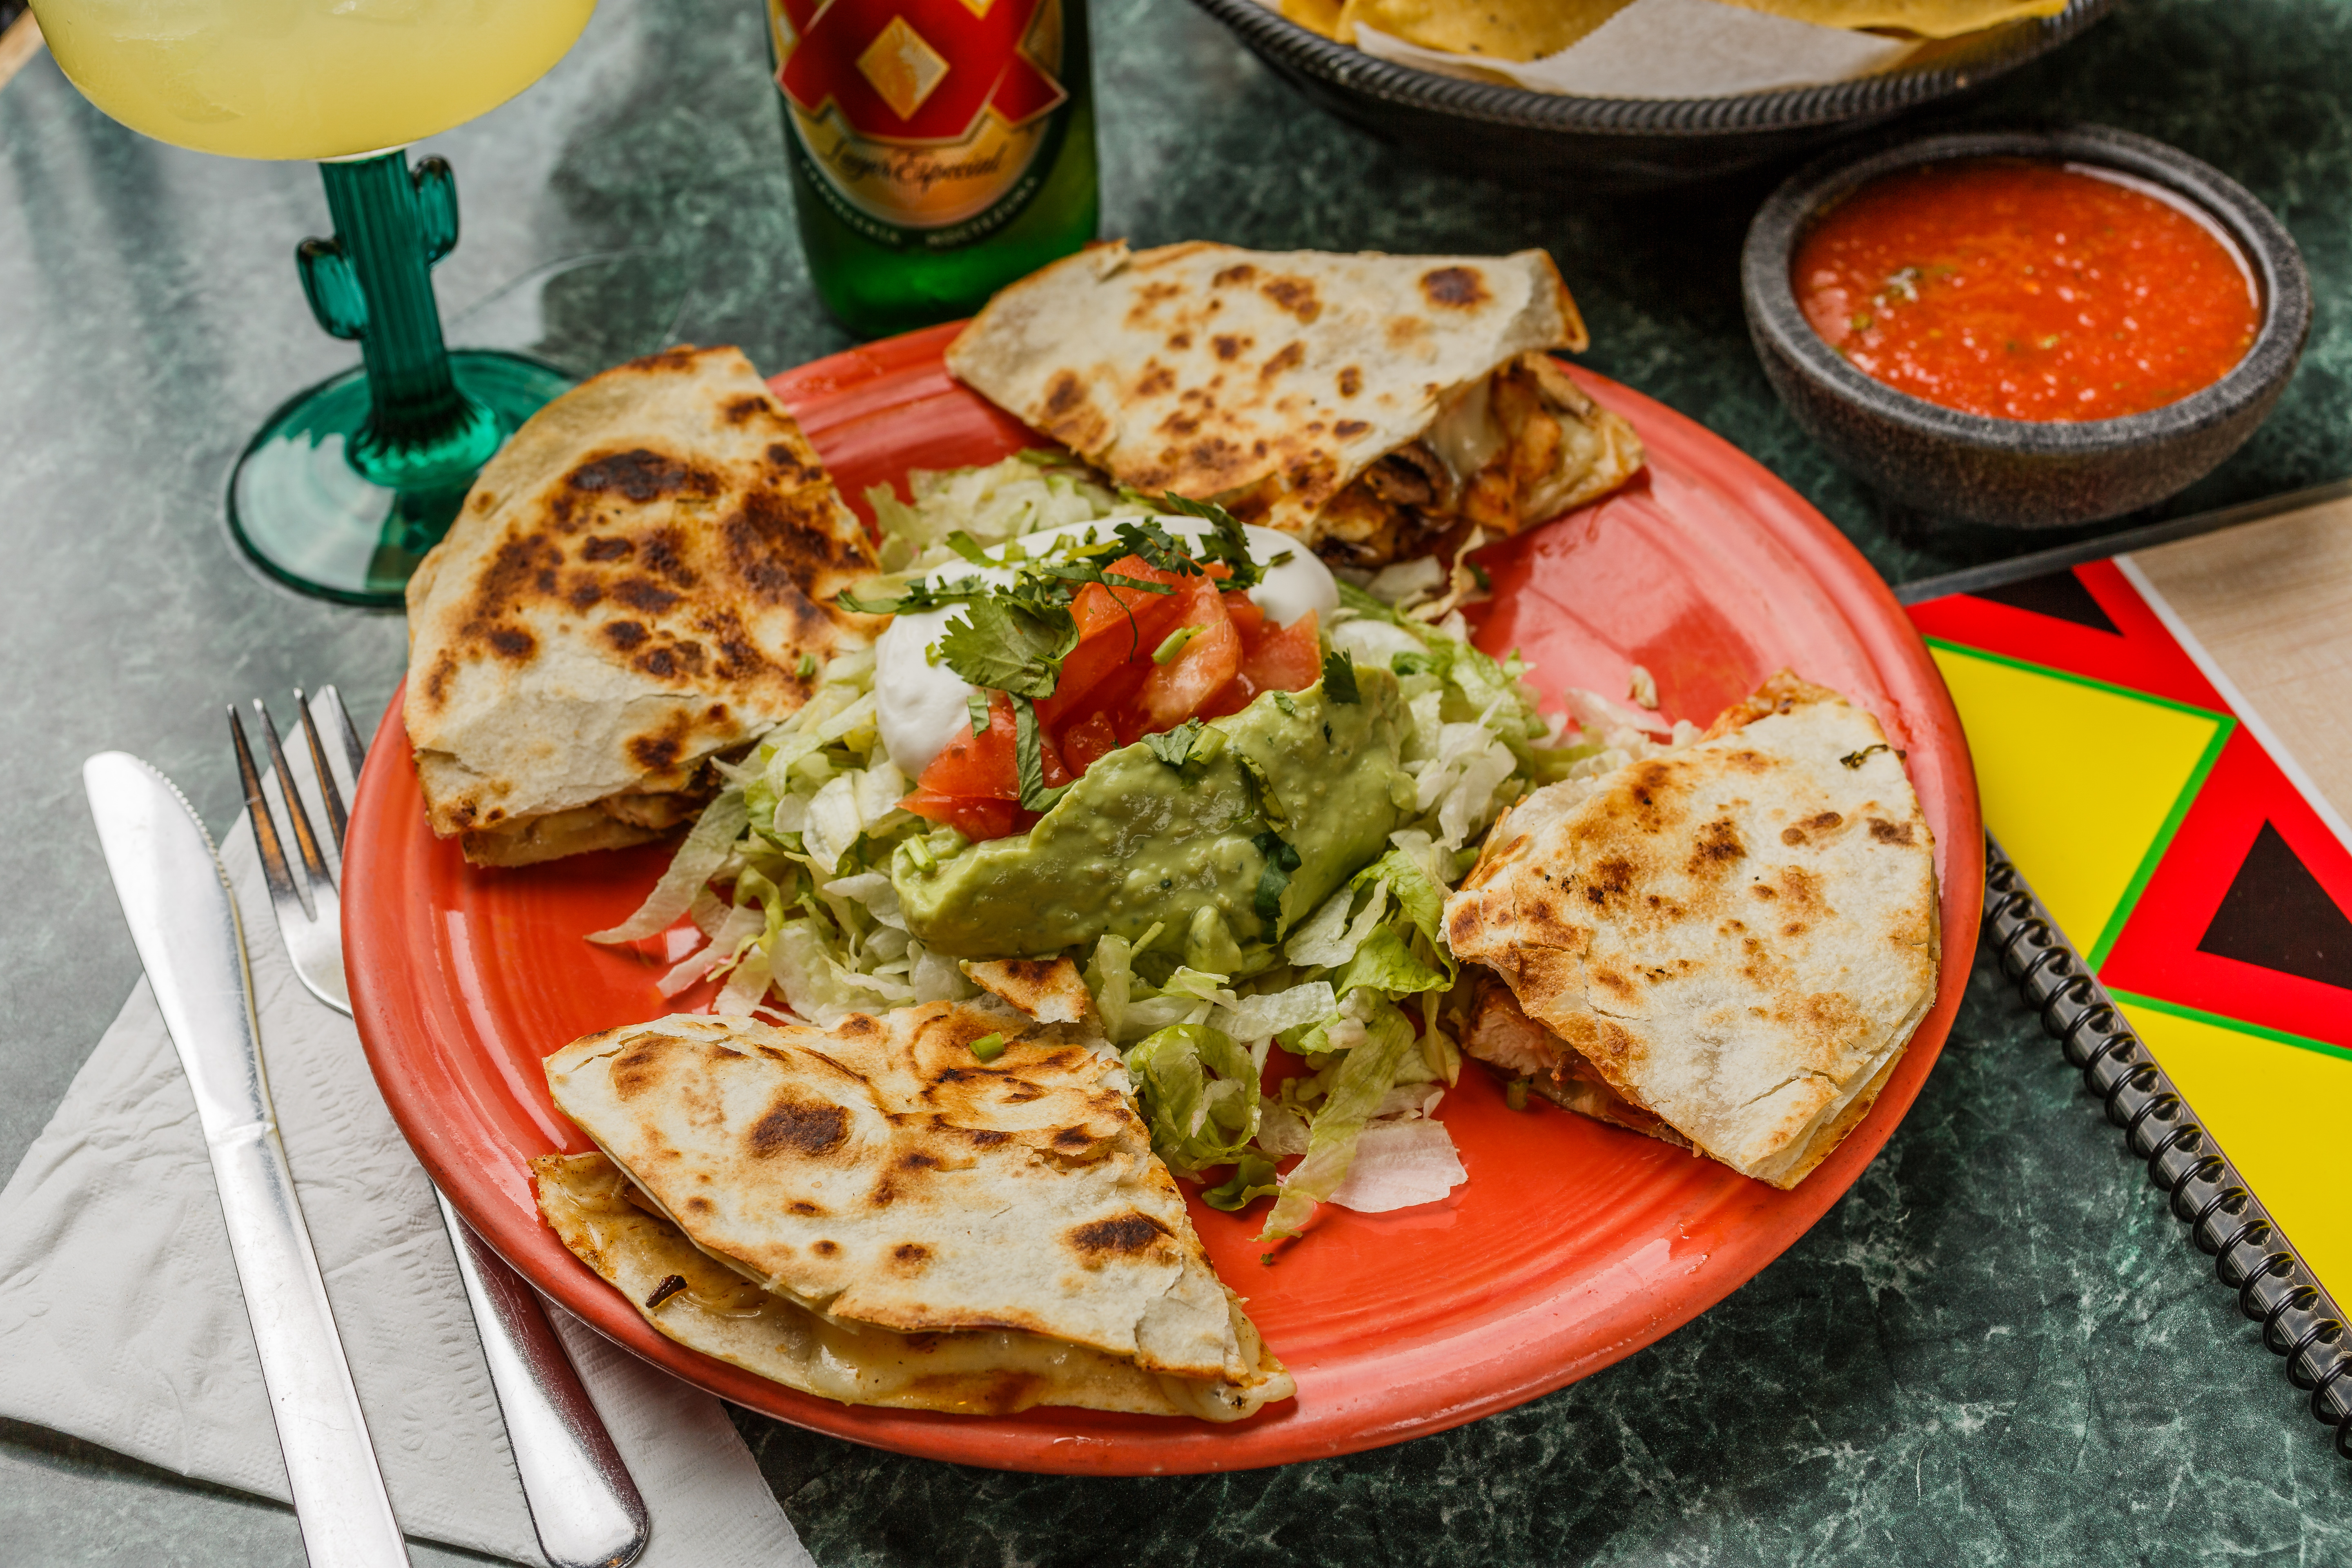 El Sombrero White Cheese Queso Longview Texas Mexican Restaurant Food Taco quesadilla fajita